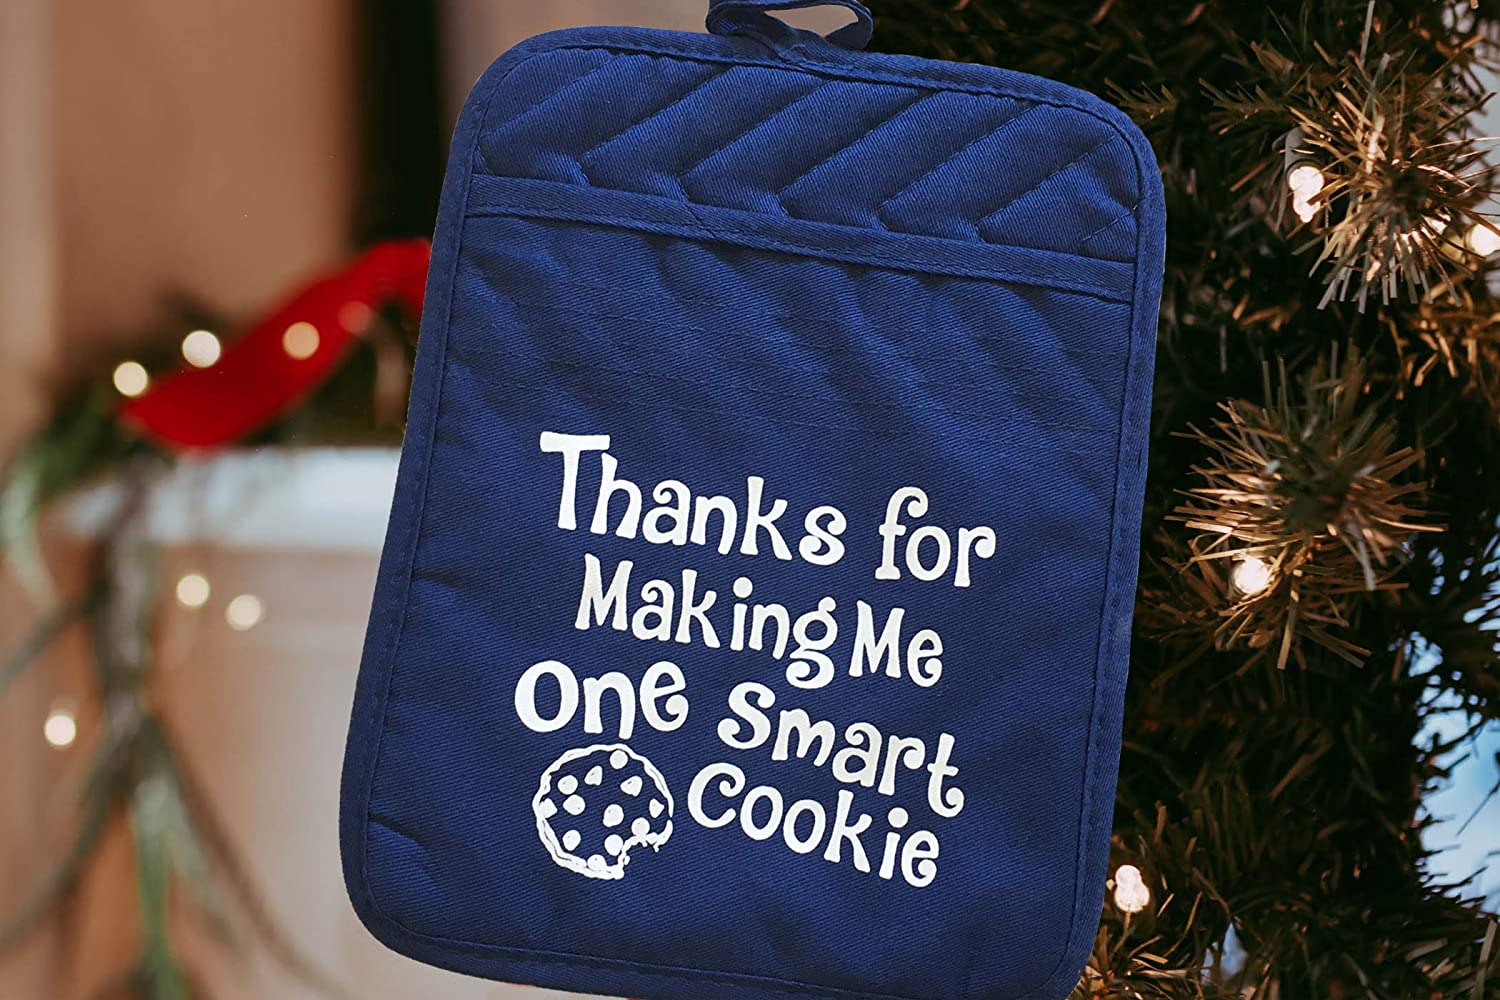 One Smart Cookie Pot Holder